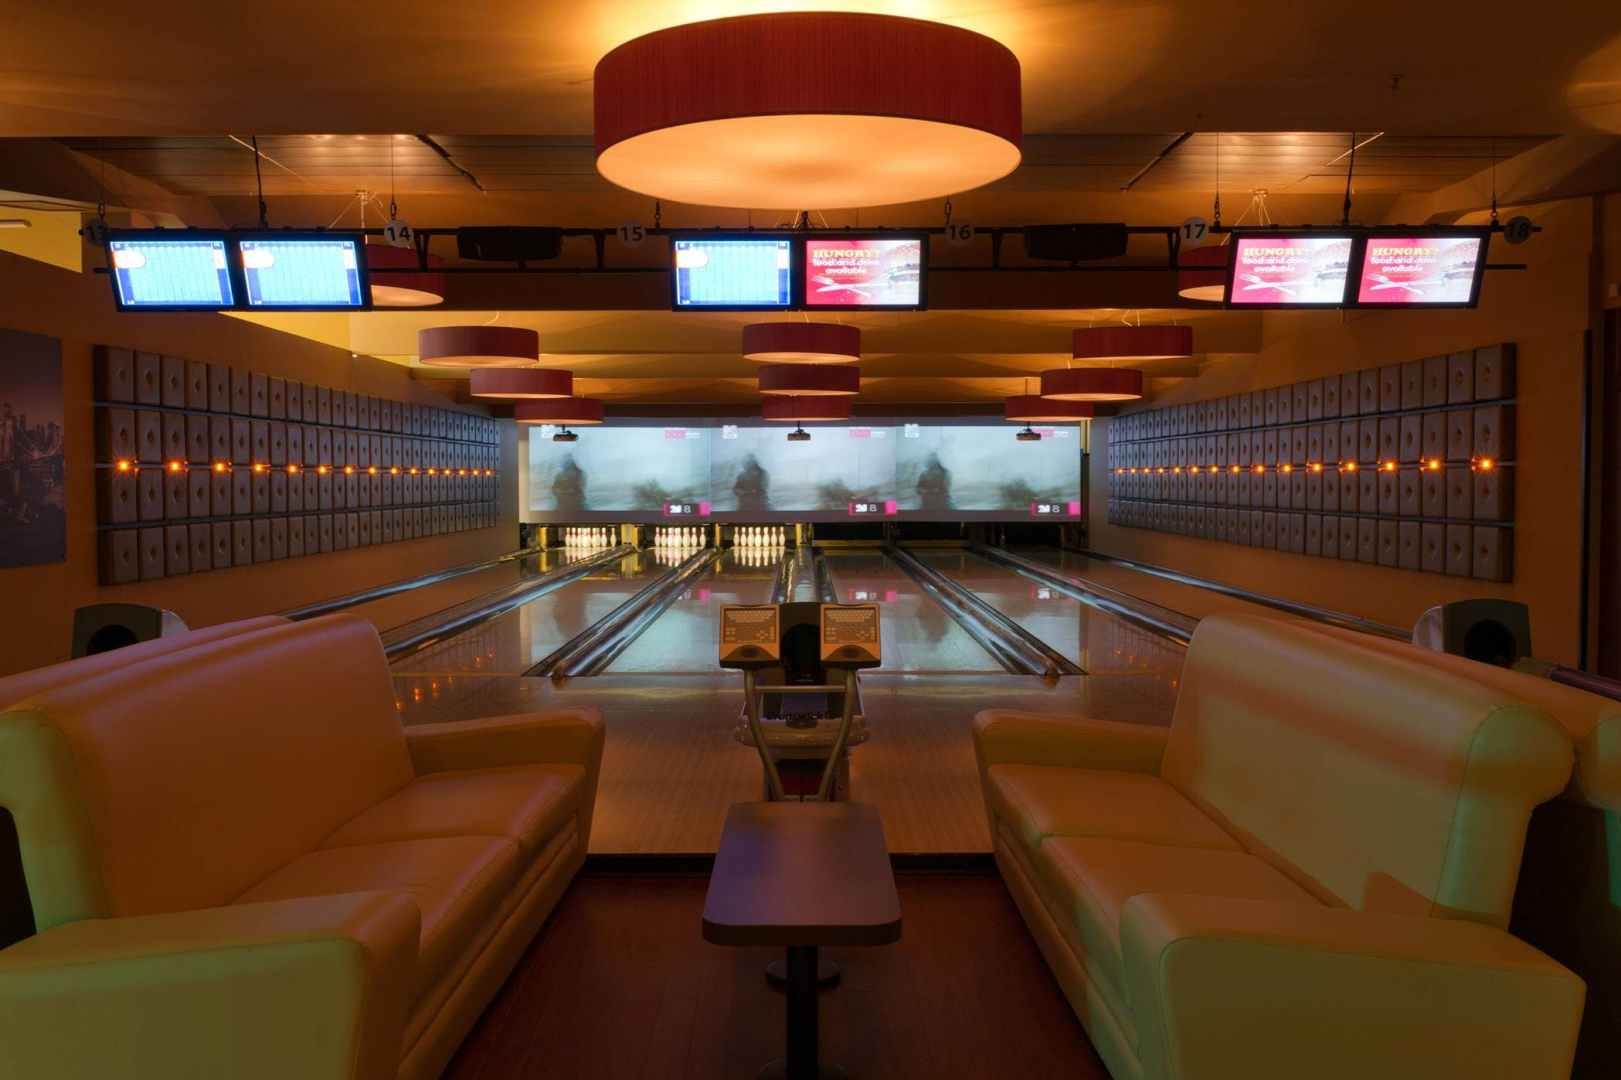 hire space venue hire vip bowling lanes at namco funscape  [ 1920 x 1080 Pixel ]